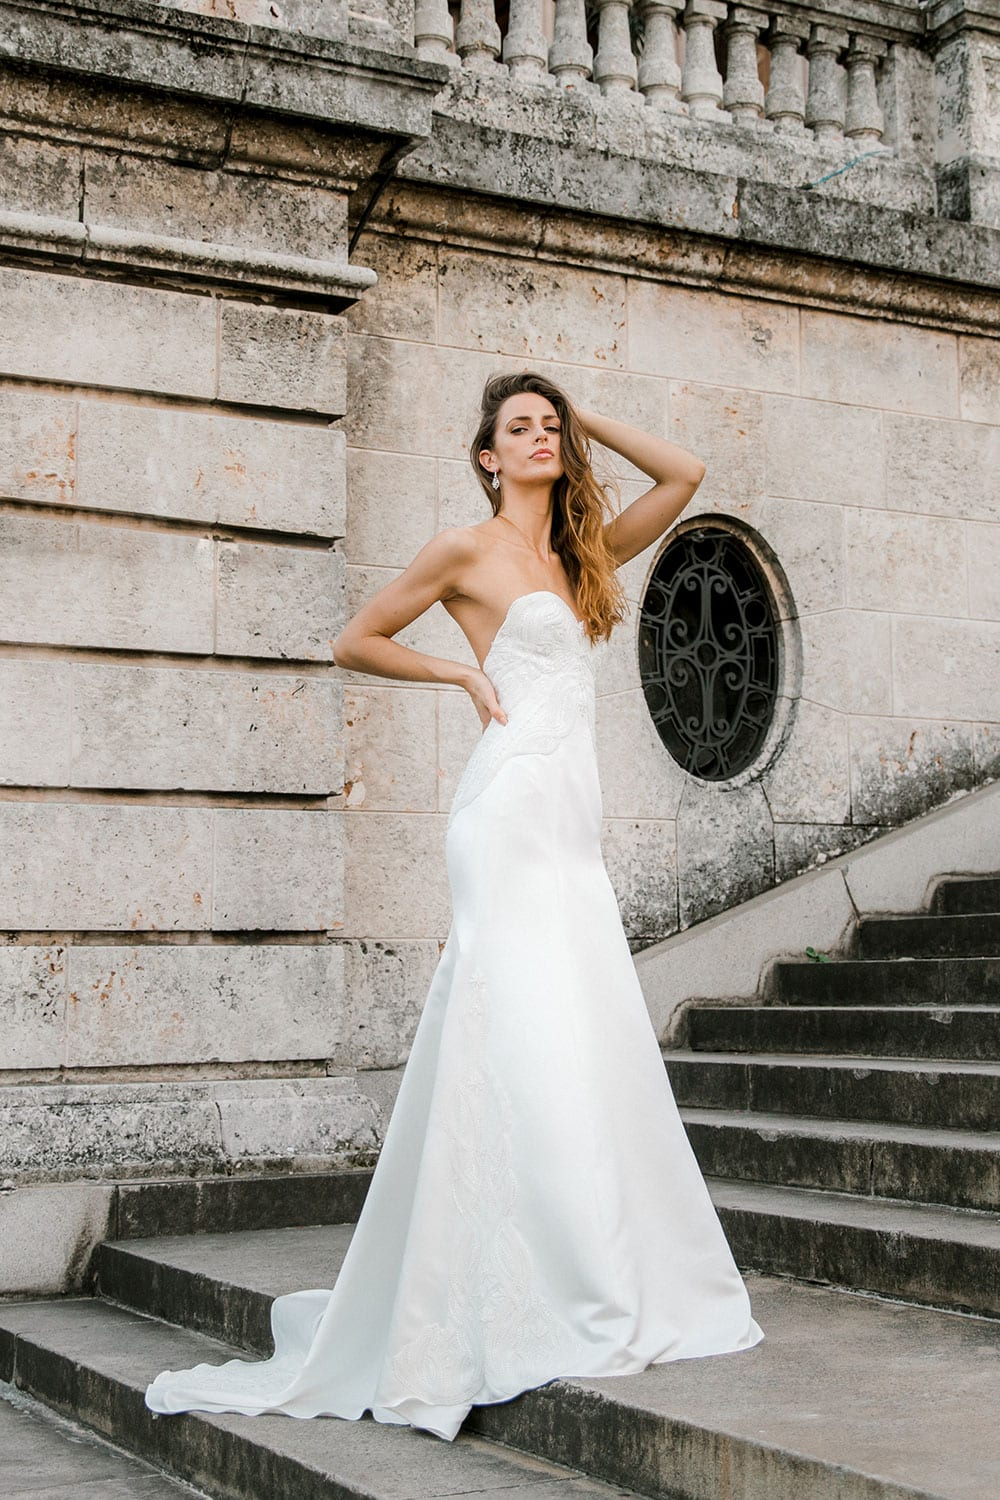 Model wearing Vinka Design Elsa Wedding Dress, a Satin Princess Line Wedding Gown with bodice on steps in the heart of Havana